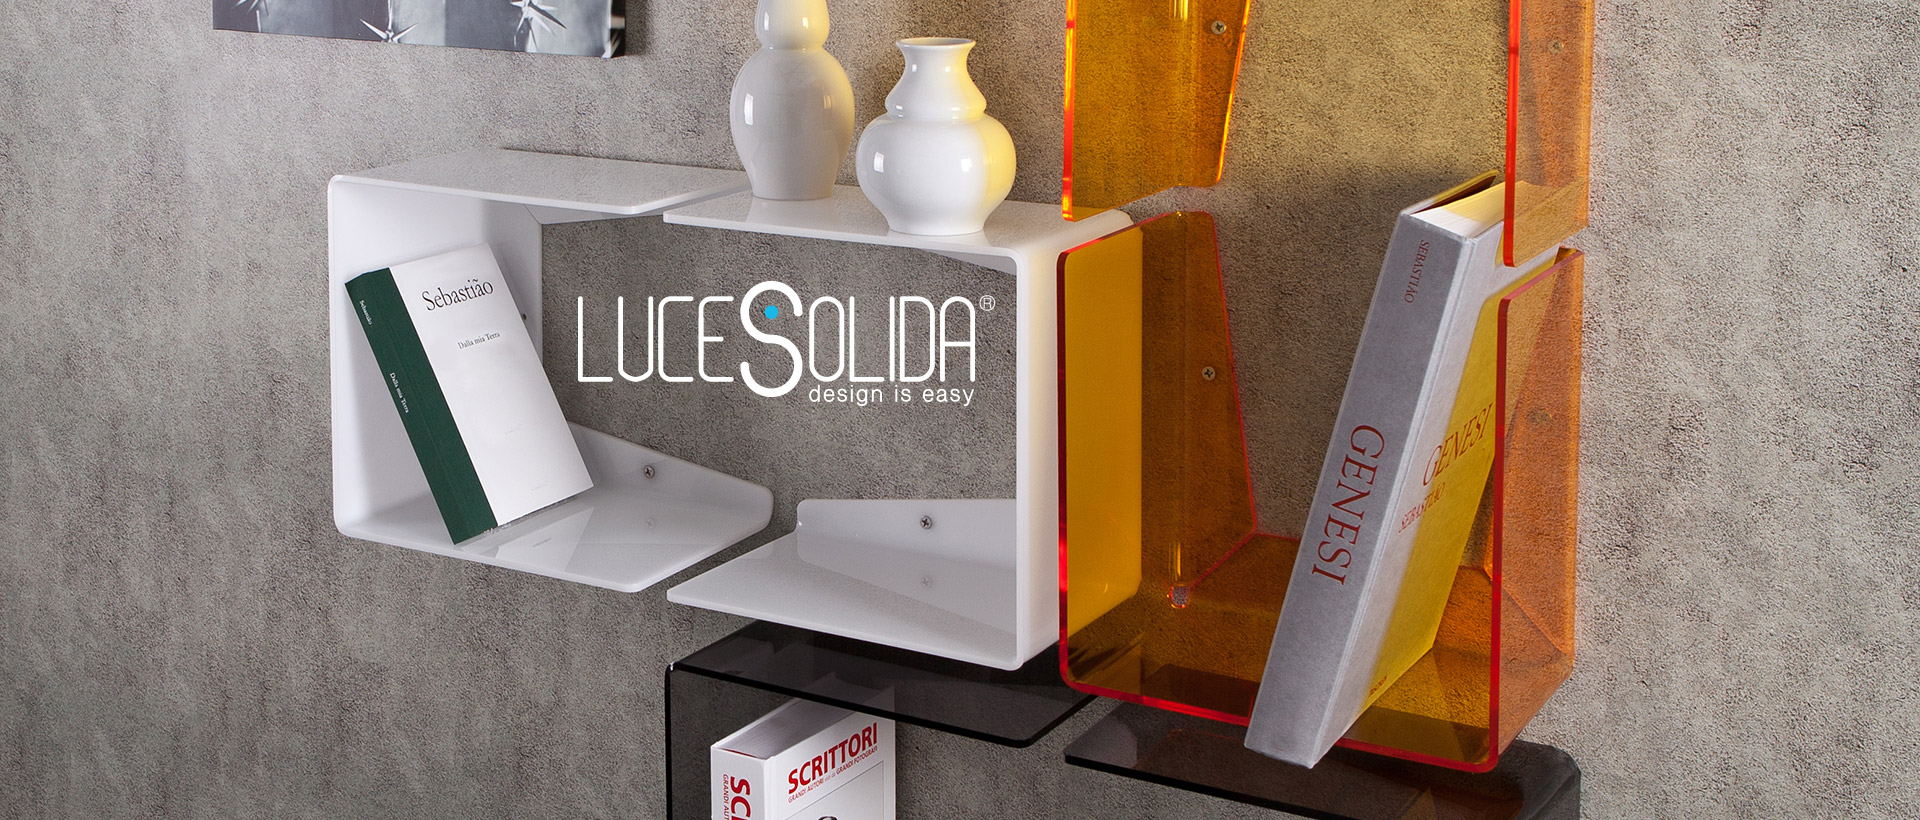 Lucesolida – social media marketing